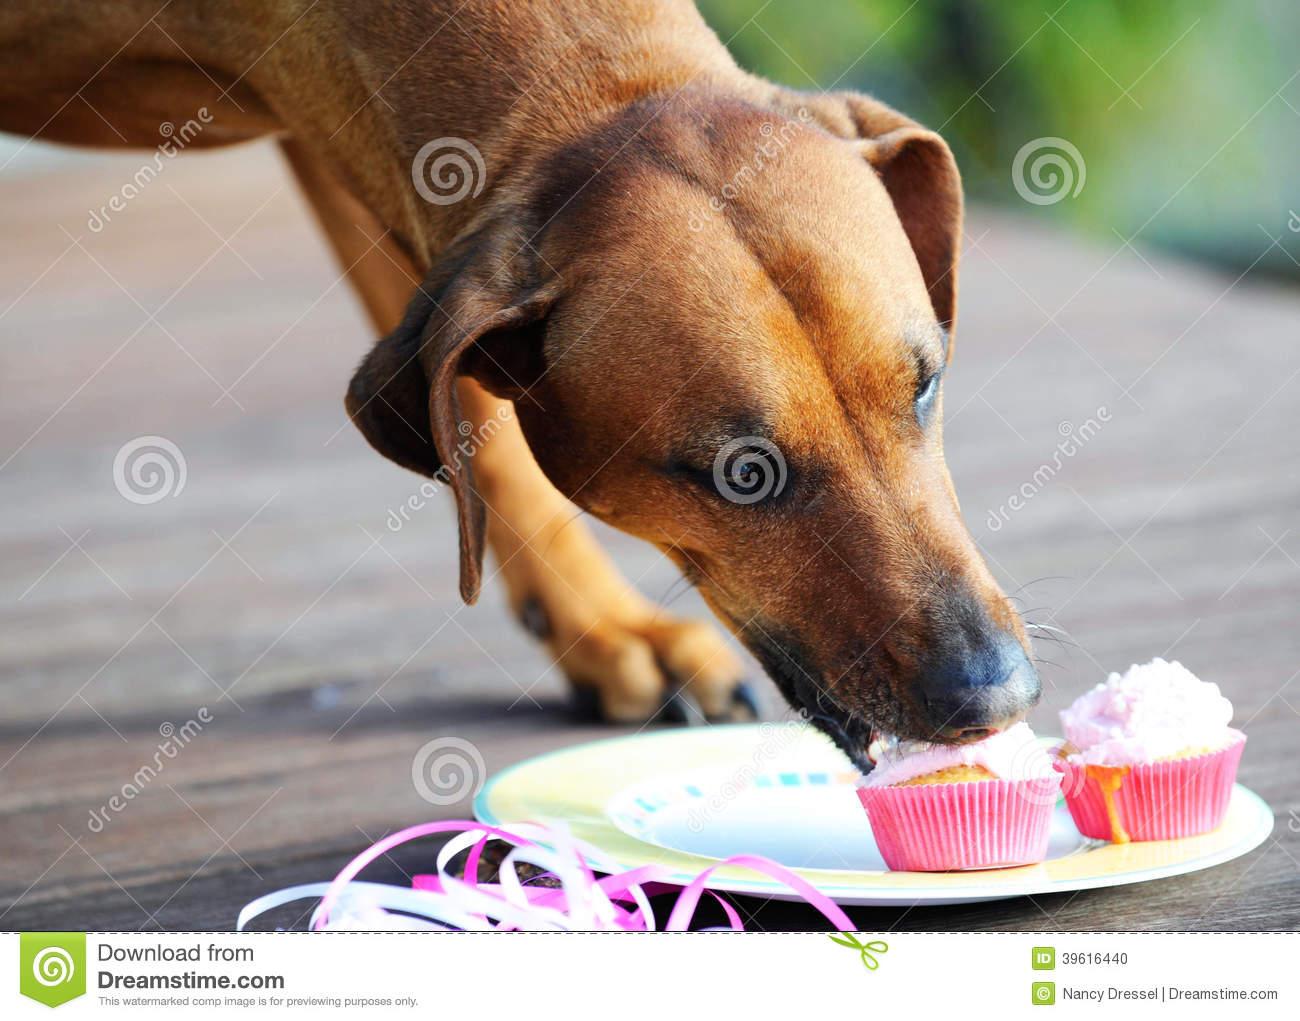 Dog Eating Muffins Stock Photo Image Of Funny Garden